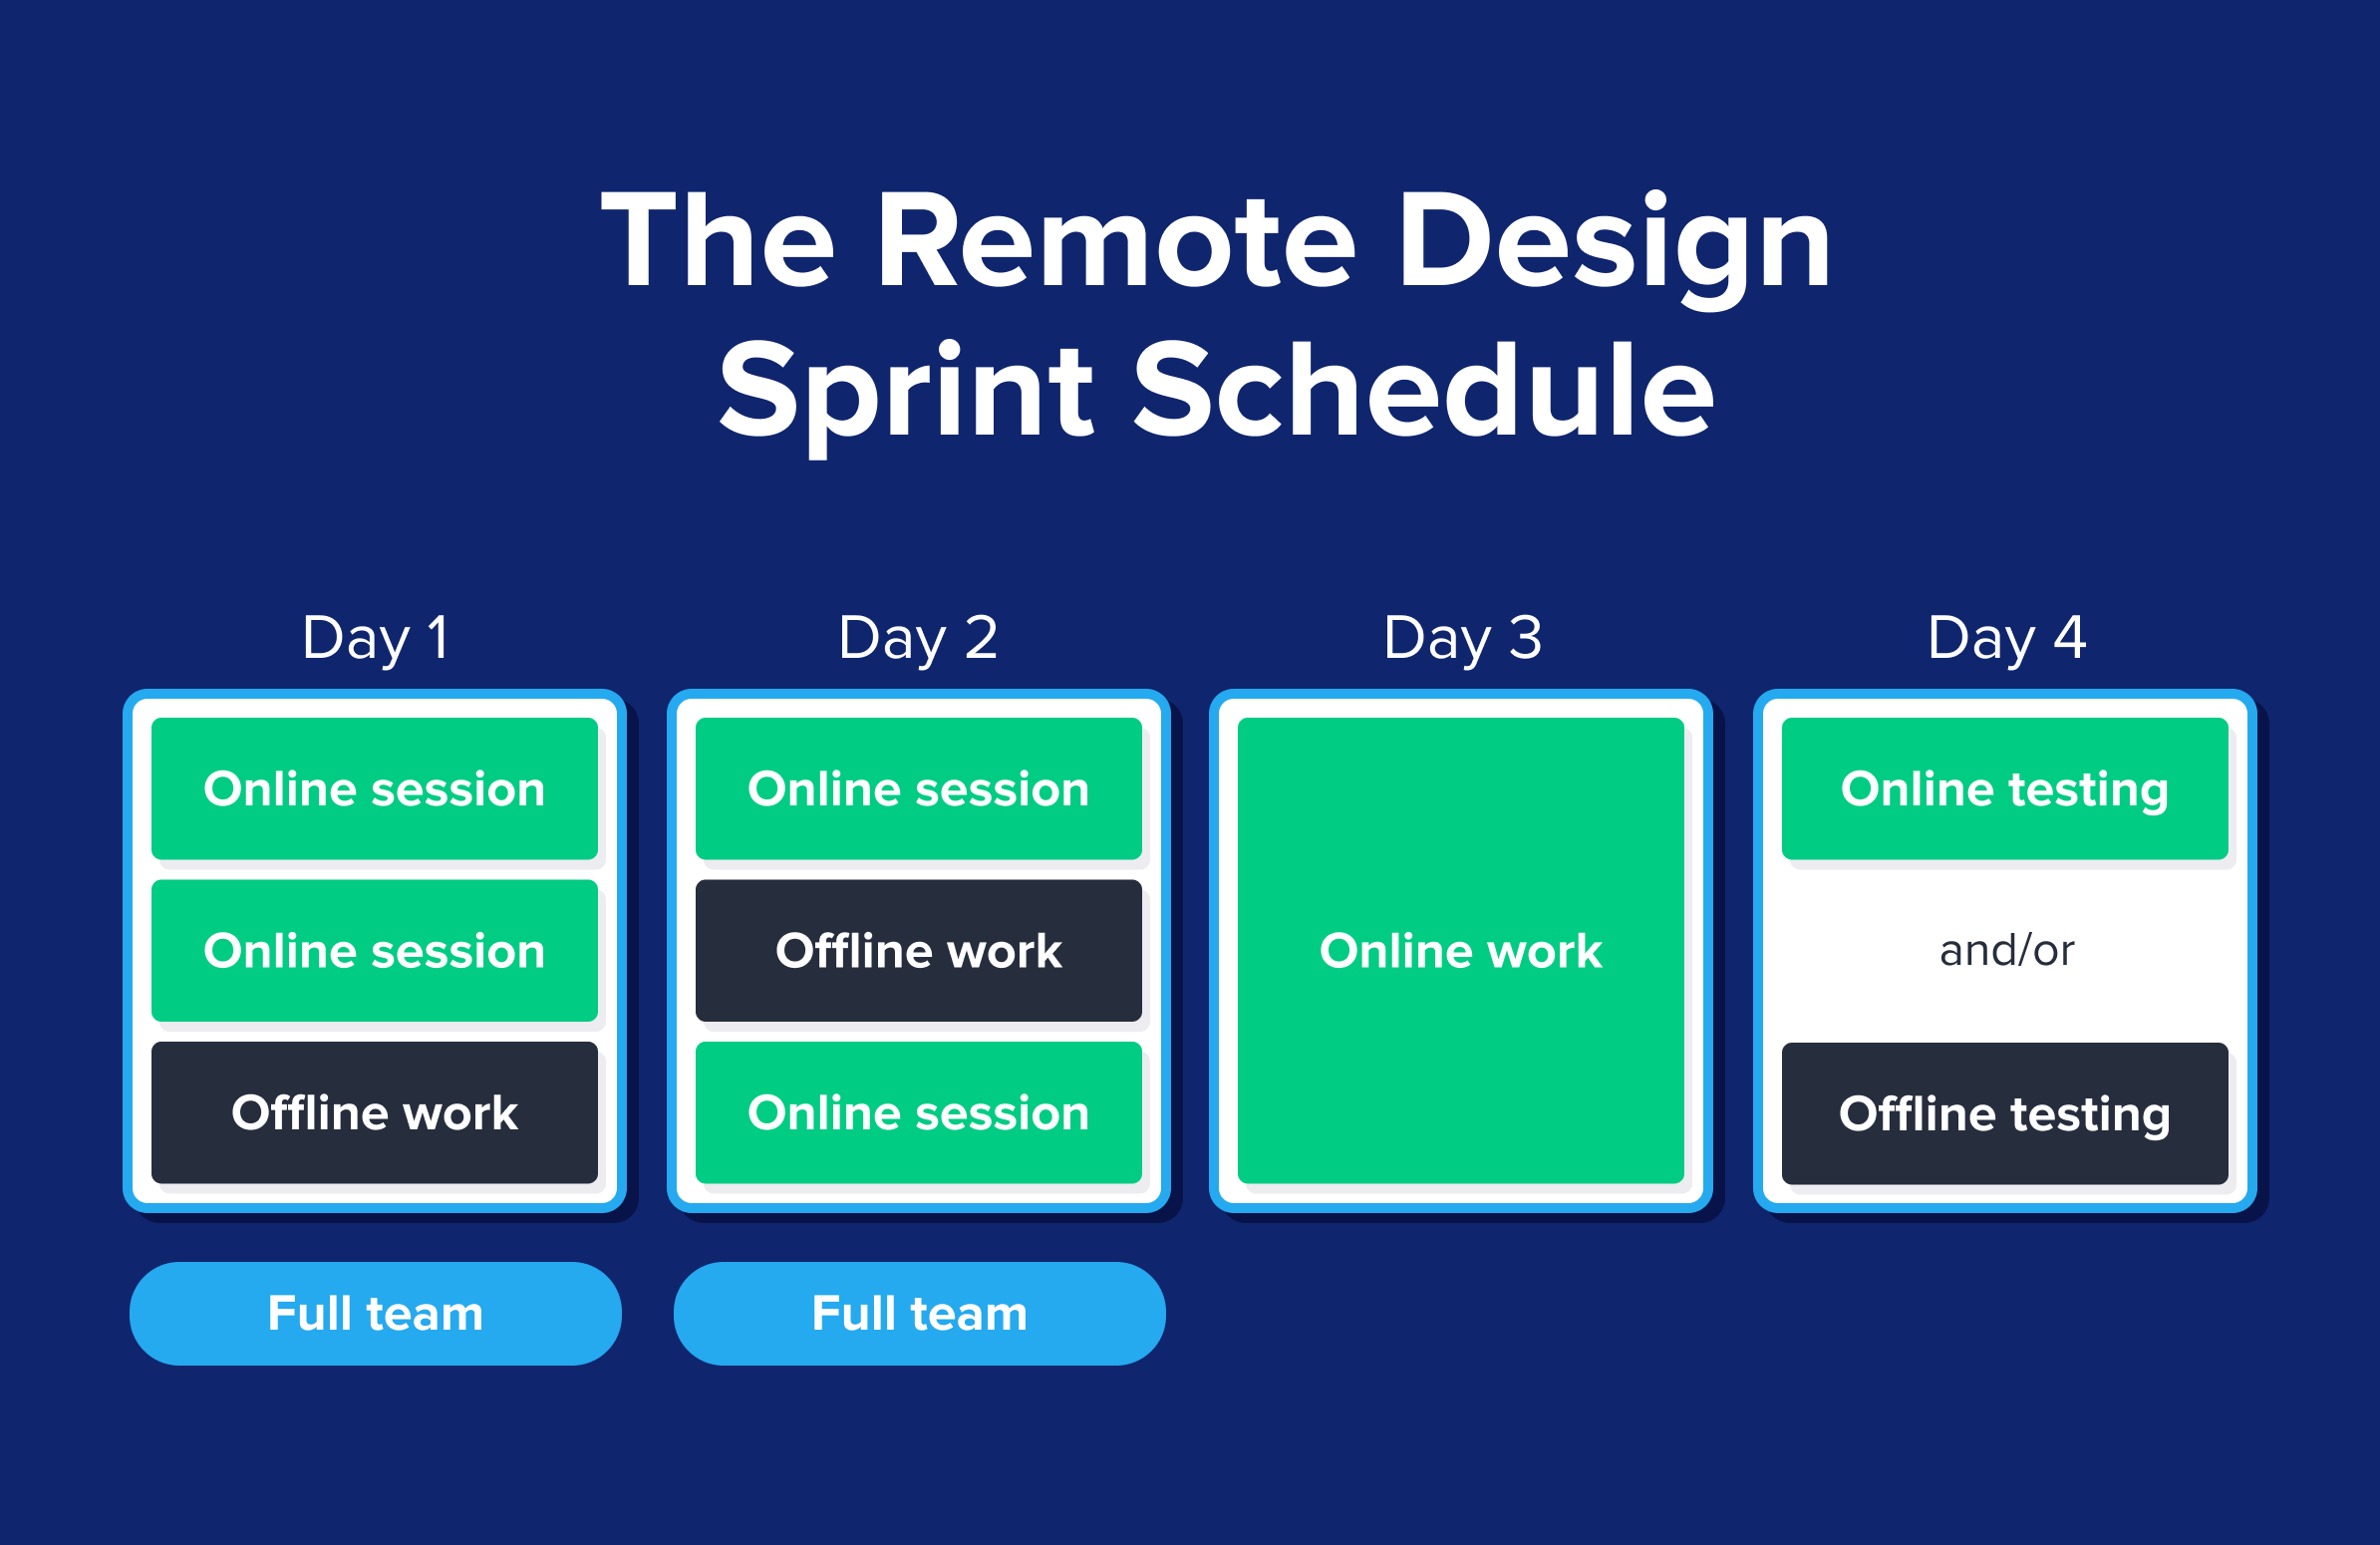 The design sprint framework and schedule